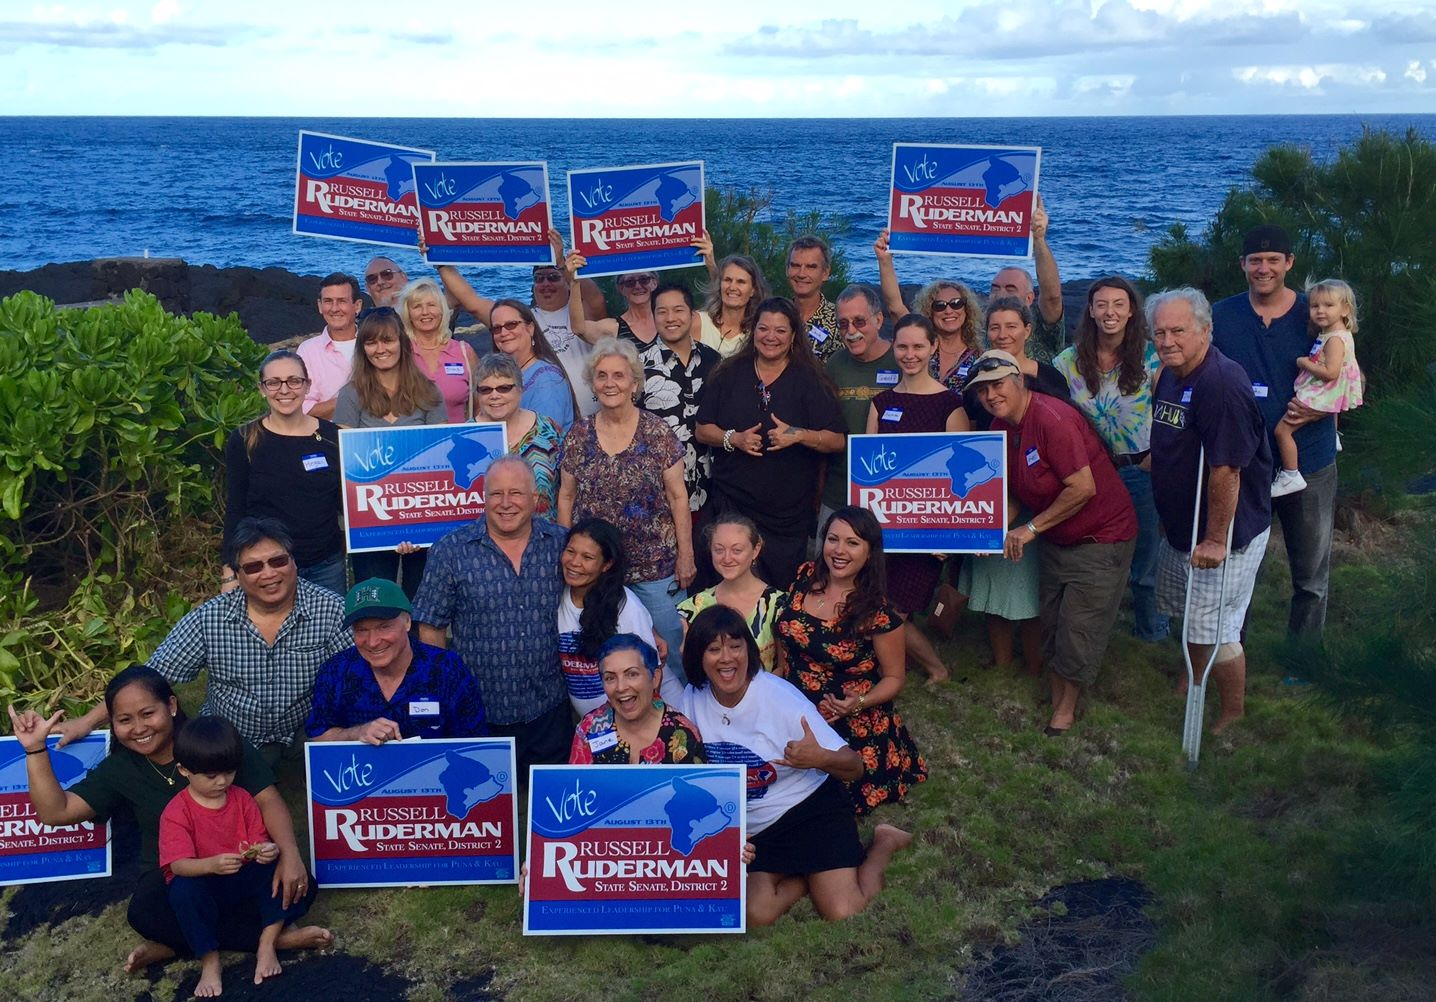 campaign-fun-hawaii-elections-russell-ruderman